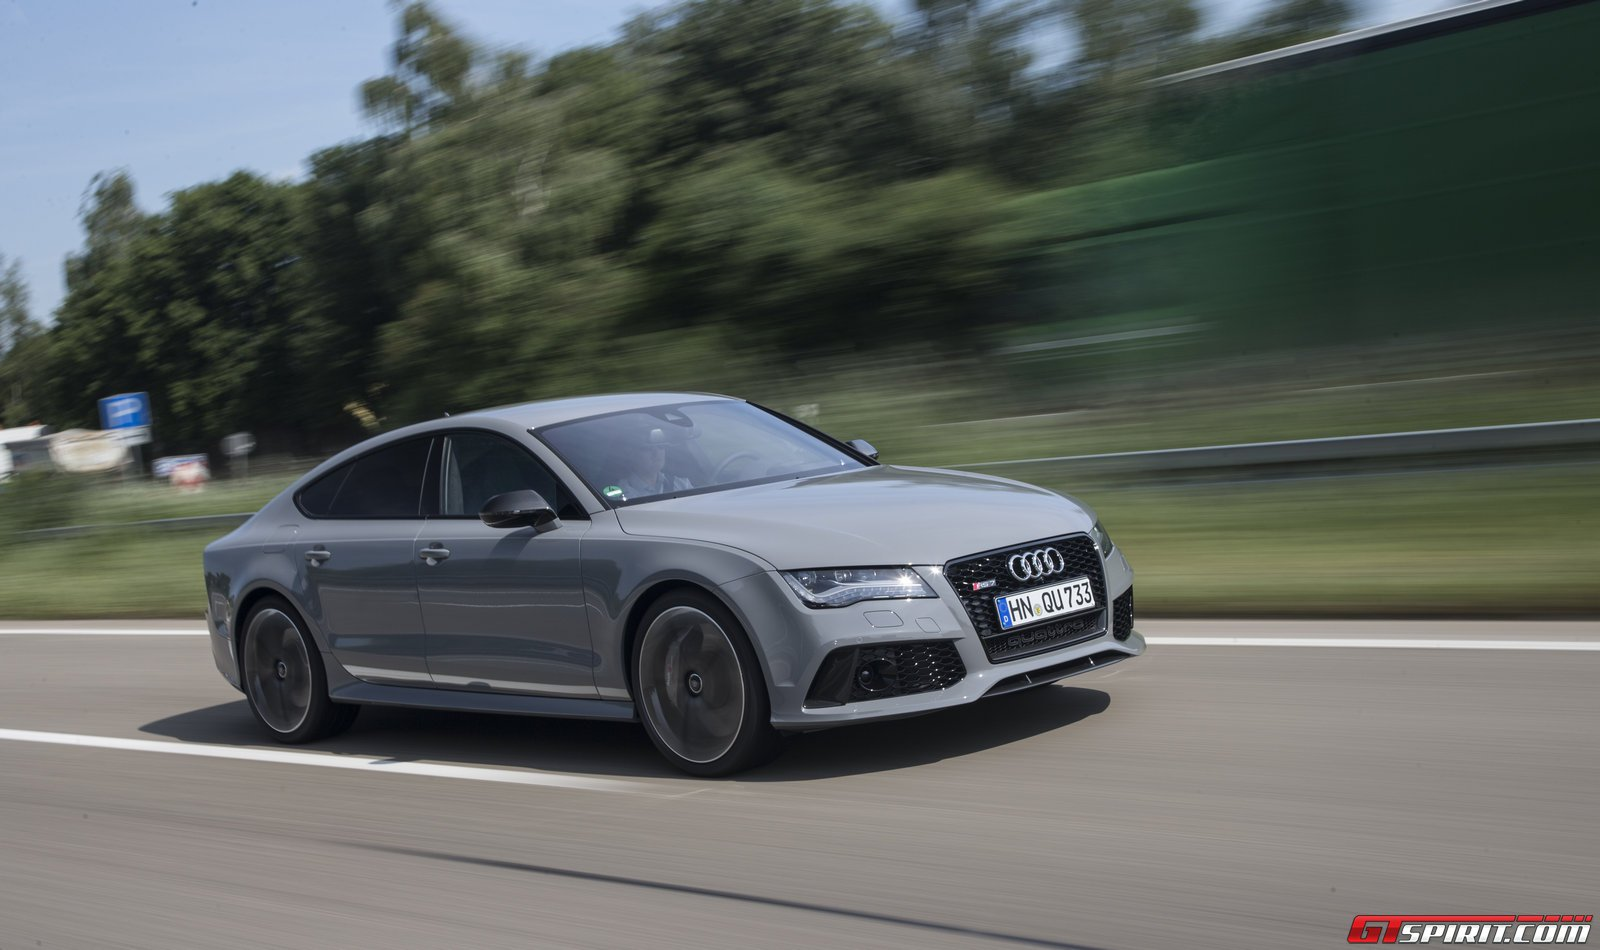 Road Test 2014 Audi Rs7 Review 2017 Sportback With A Red Colour Suspension